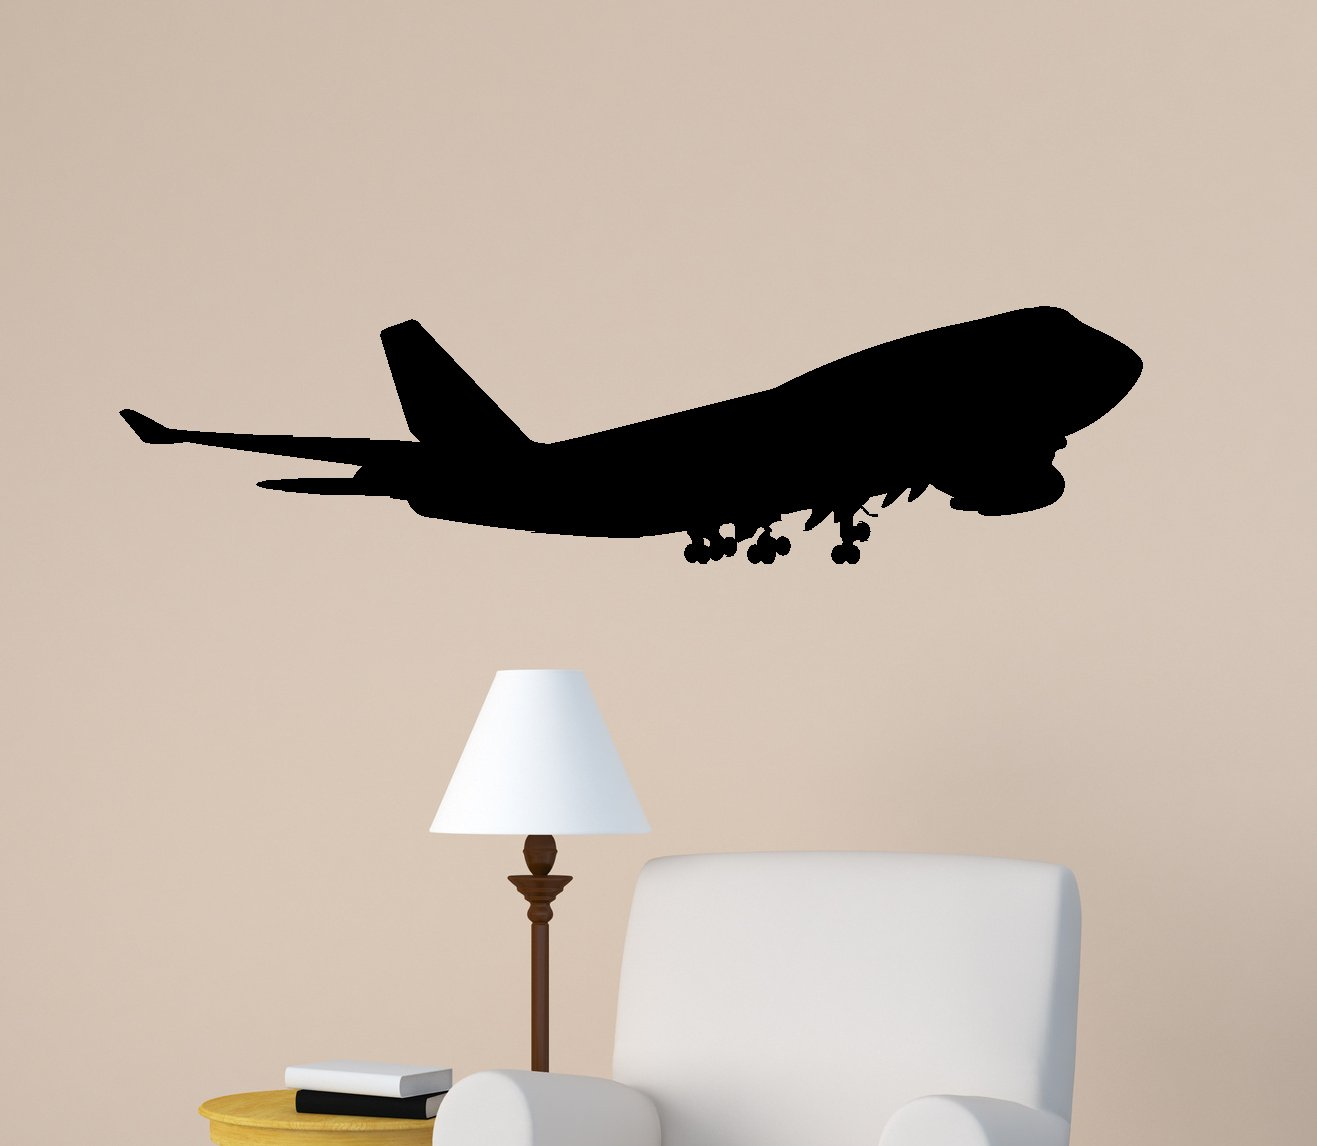 Aircraft Wall Decal Jet Airliner Sticker Aviation Room Decor Kids Boys Room Mural Airplane Jumbo Jet College Dorm Office Decor (13 X 48 inches)